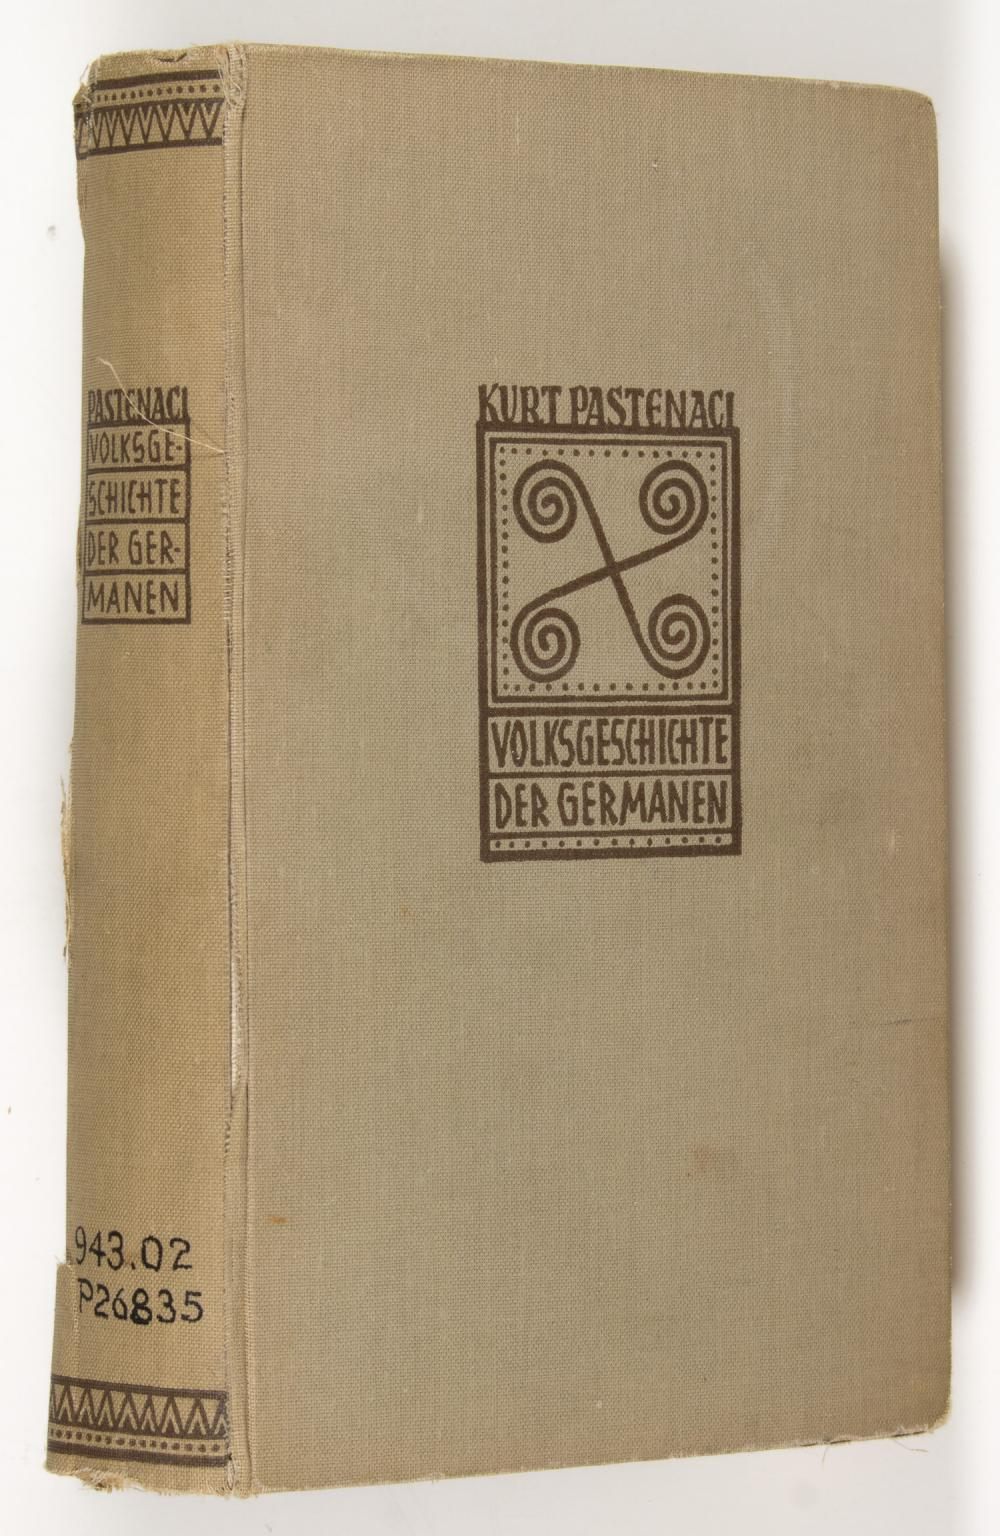 BOOK FROM THE LIBRARY OF NAZI TREASURER FRANZ SCHWARZ